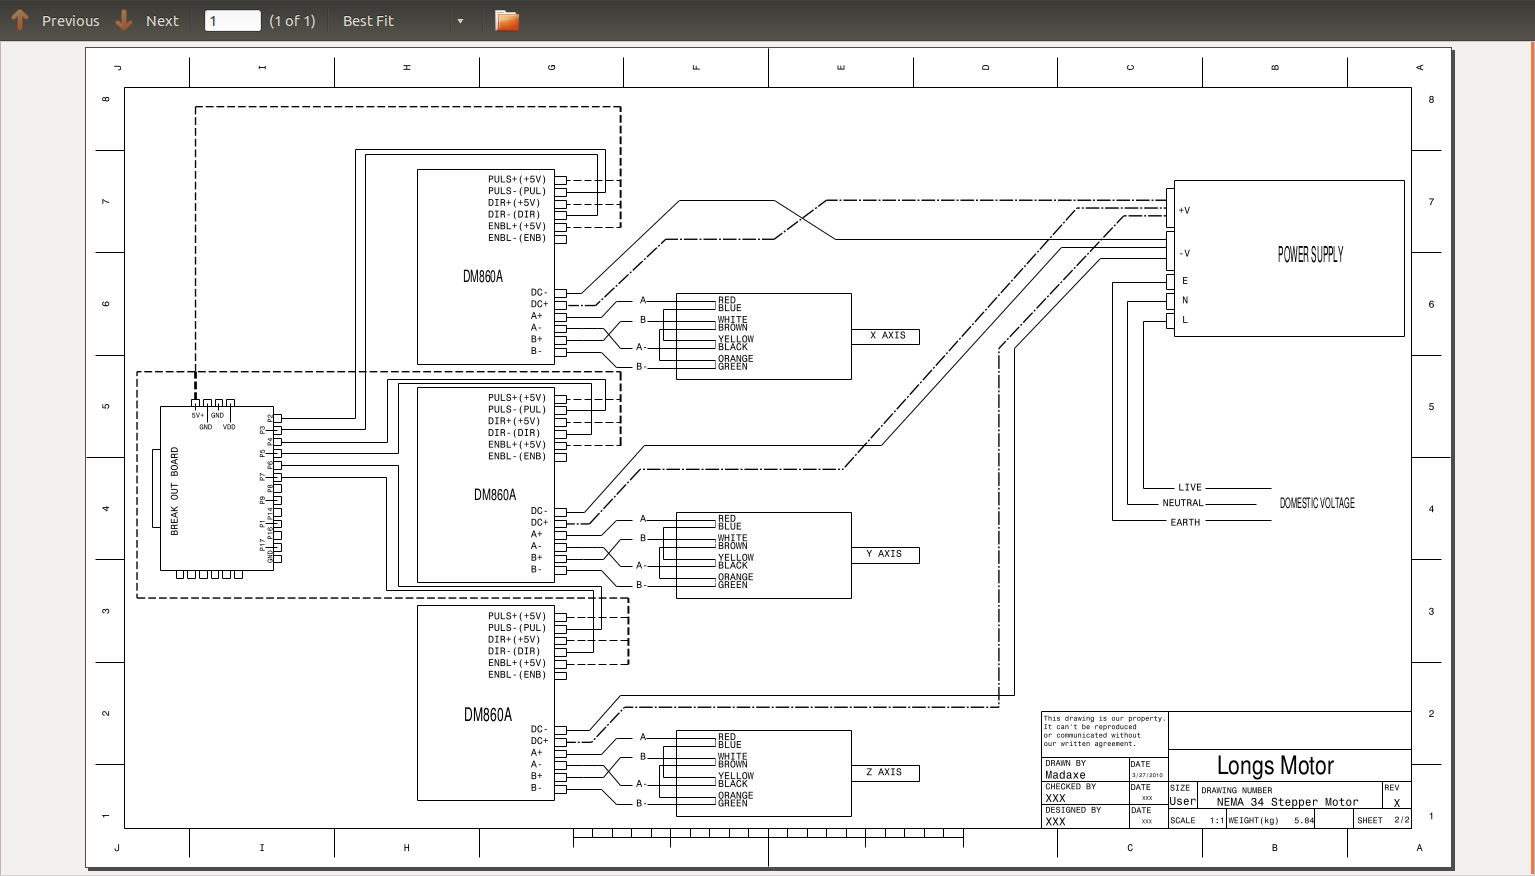 motor wiring linux with diy cnc router longs stepper motor wiring diagram at bakdesigns.co